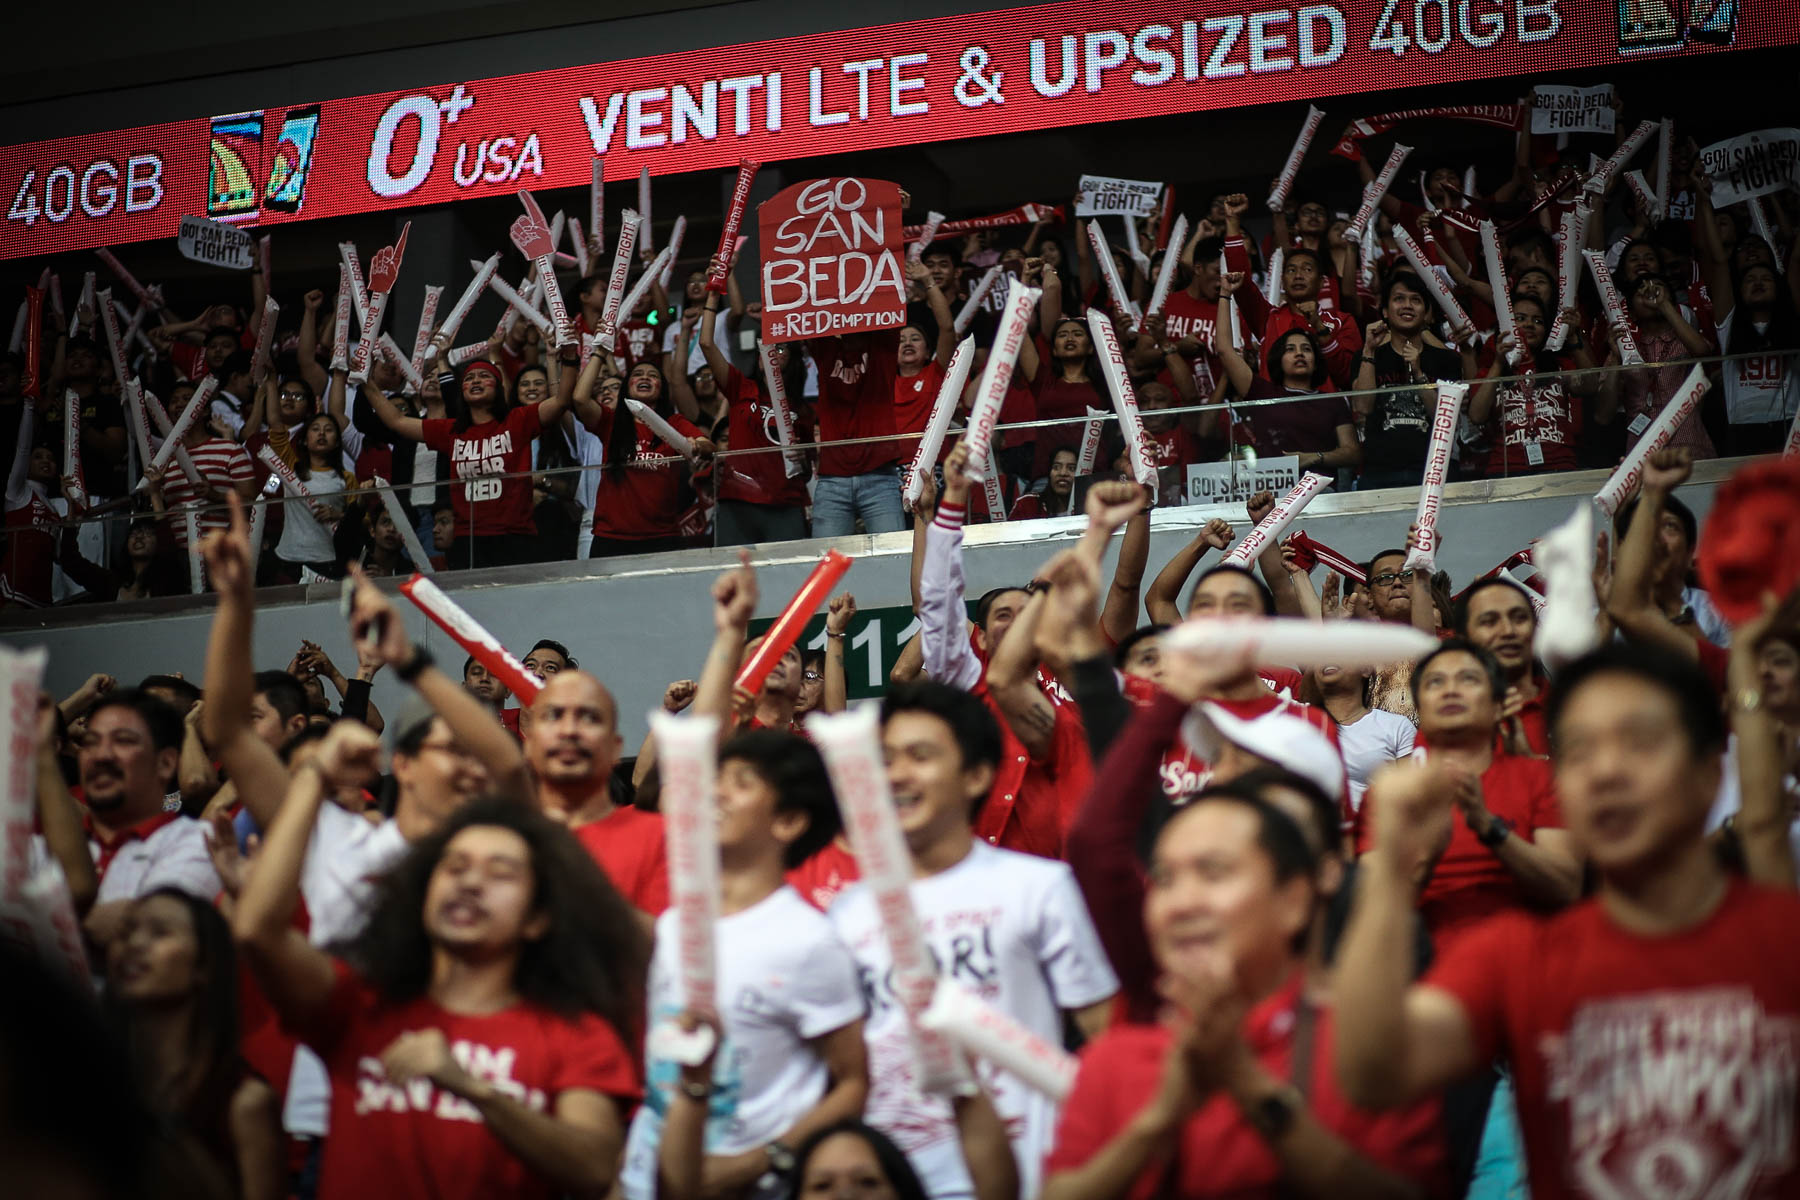 REDEMPTION. San Beda fans cheer their team on as they redeem themselves from a championship loss last season. Photo by Josh Albelda/Rappler